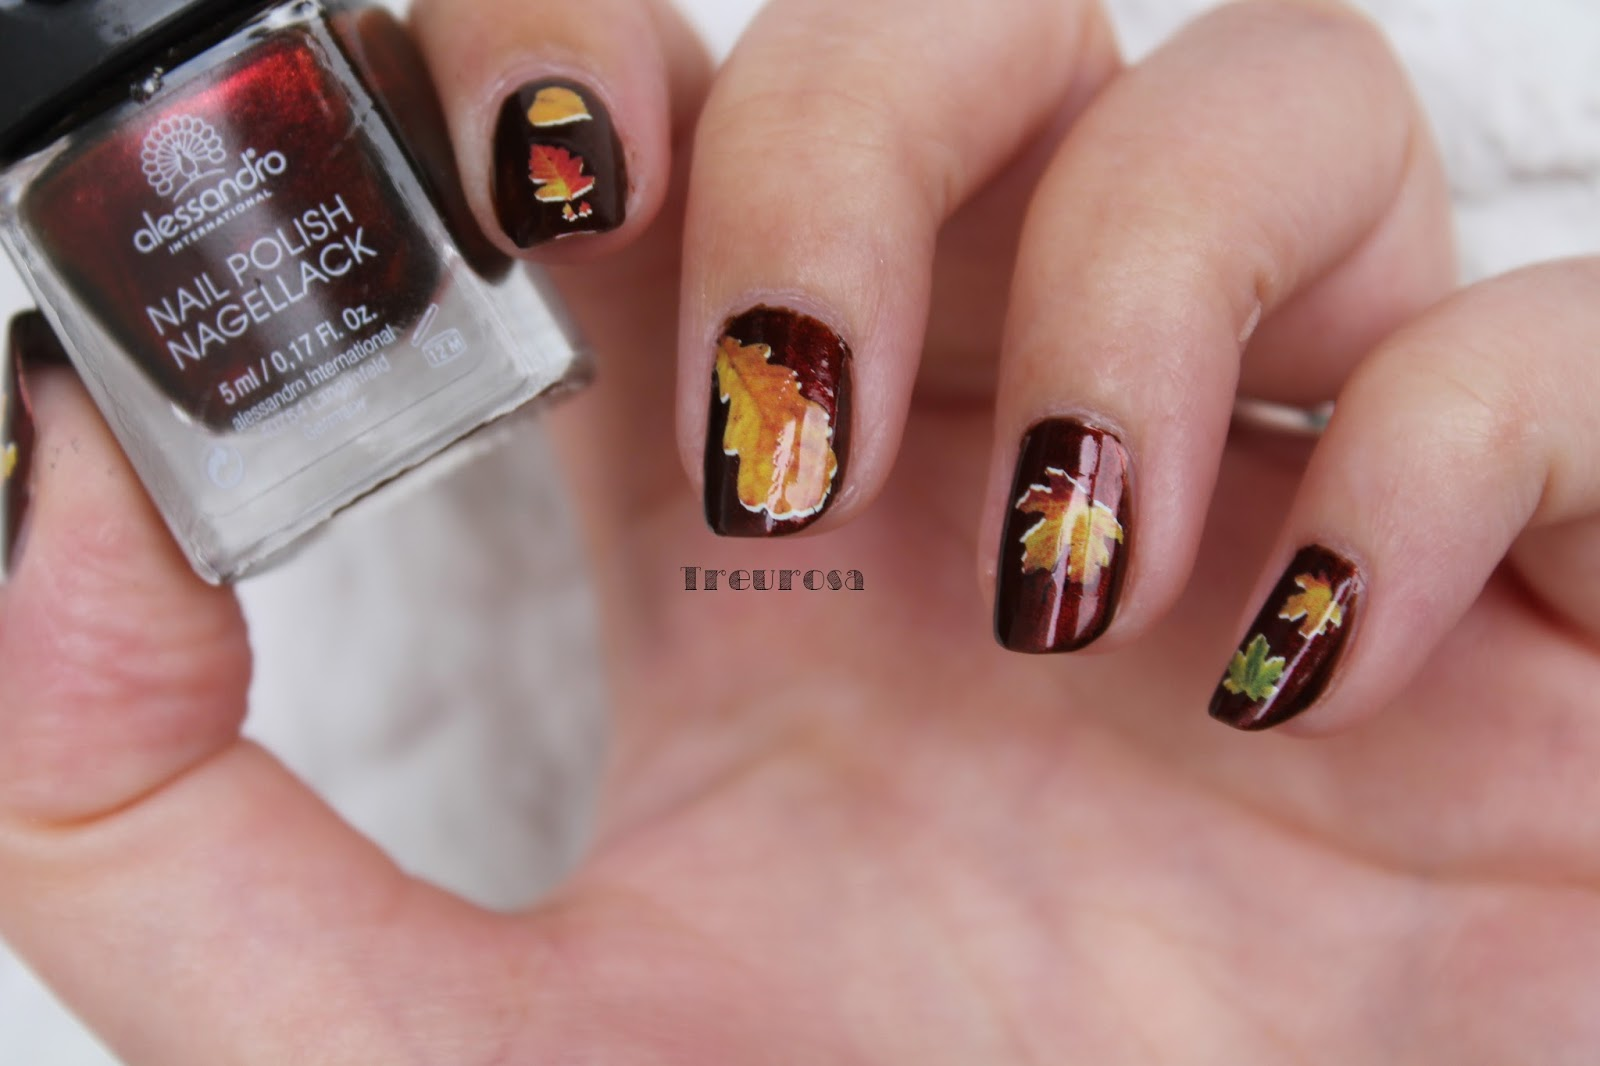 nageldesign bilder 2015 herbst - Herbst OfficeNails